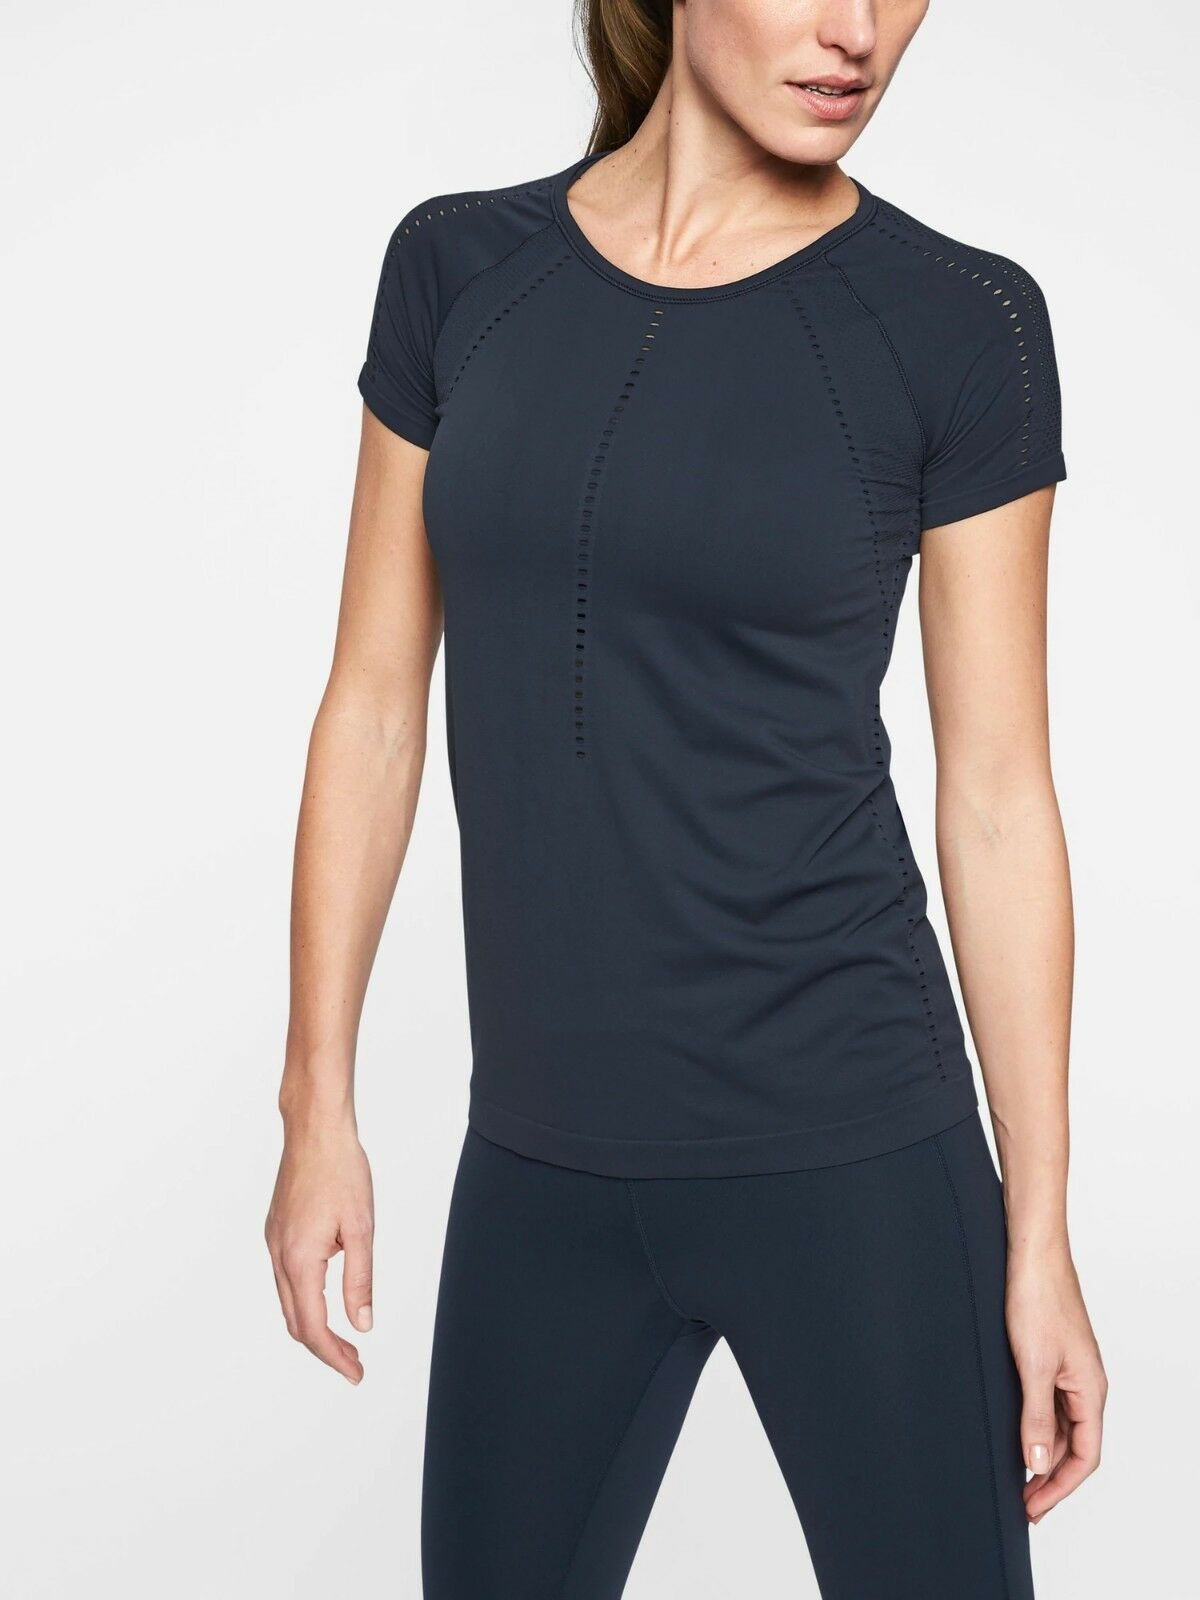 NWT Athleta Foothill Tee Short sleeves top, Navy SIZE XS         N0127